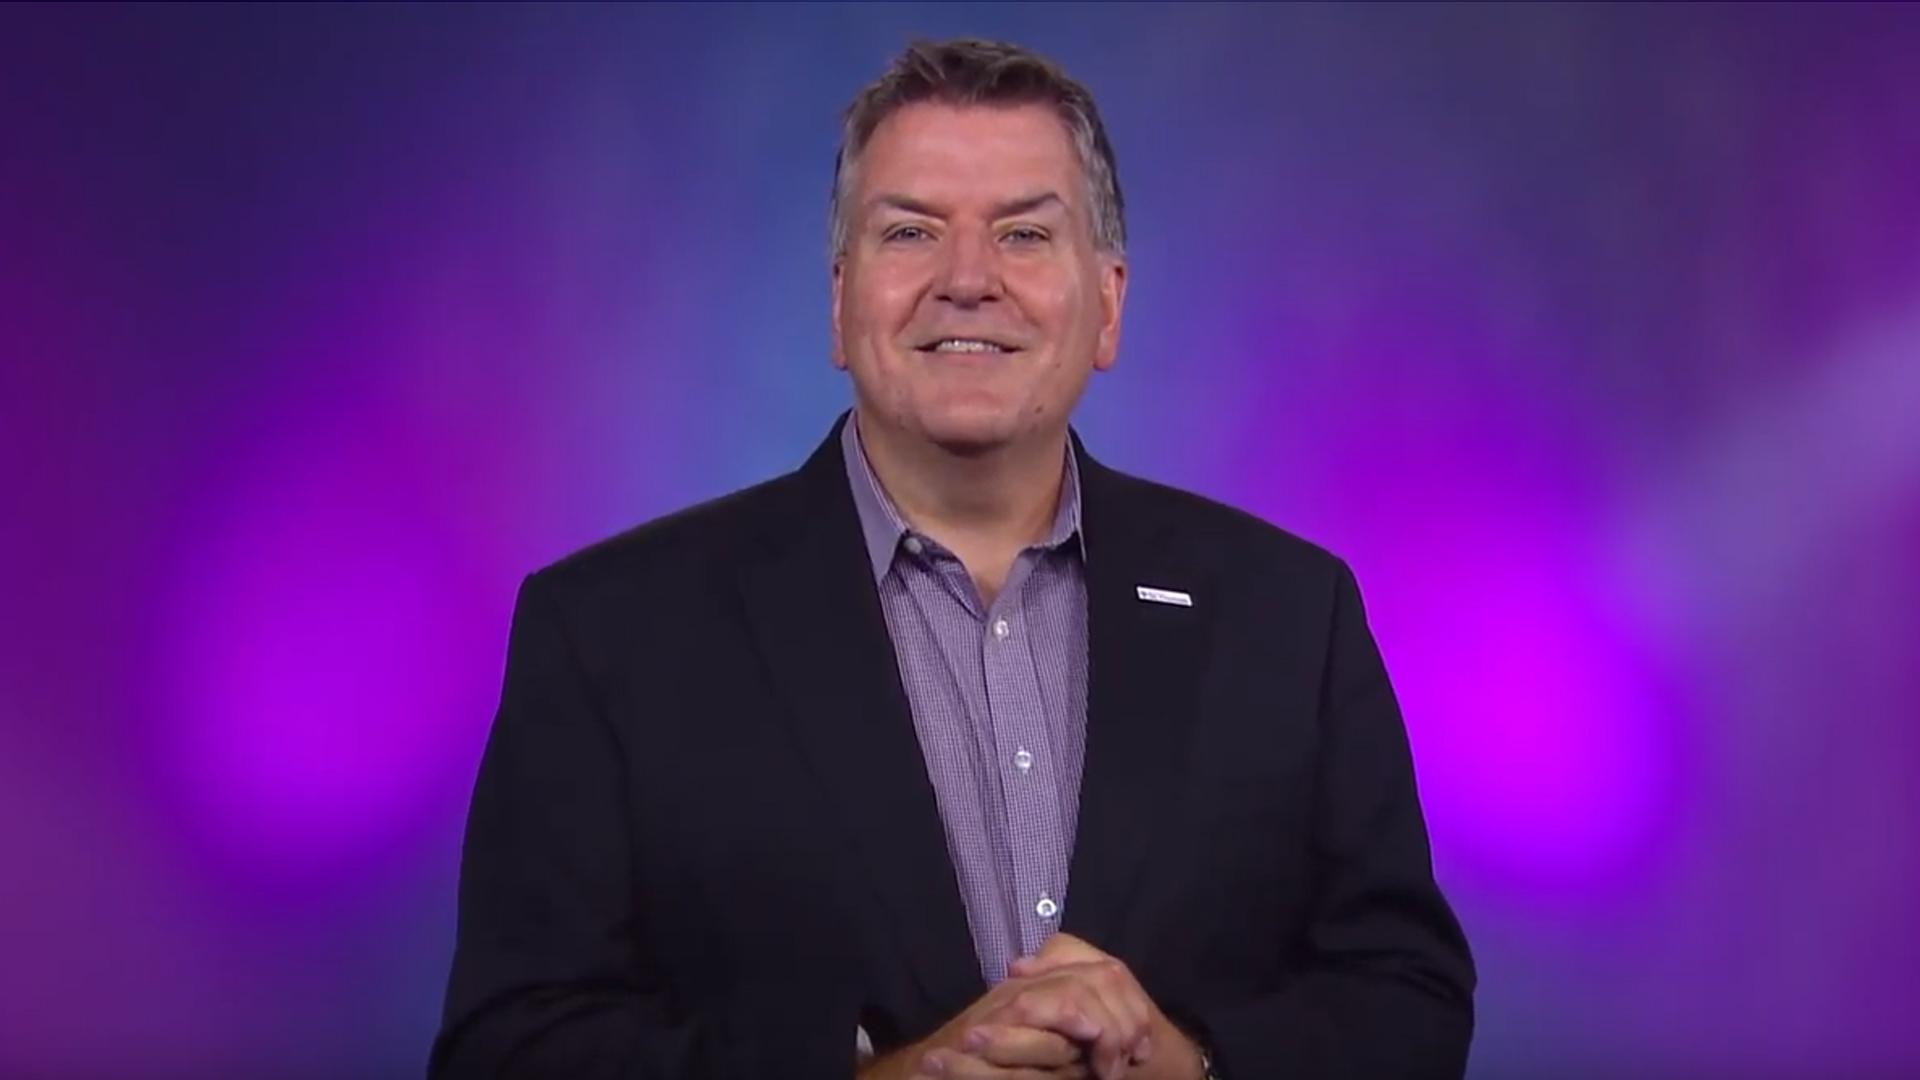 A screenshot of Joe Sullivan smiling in his welcome video